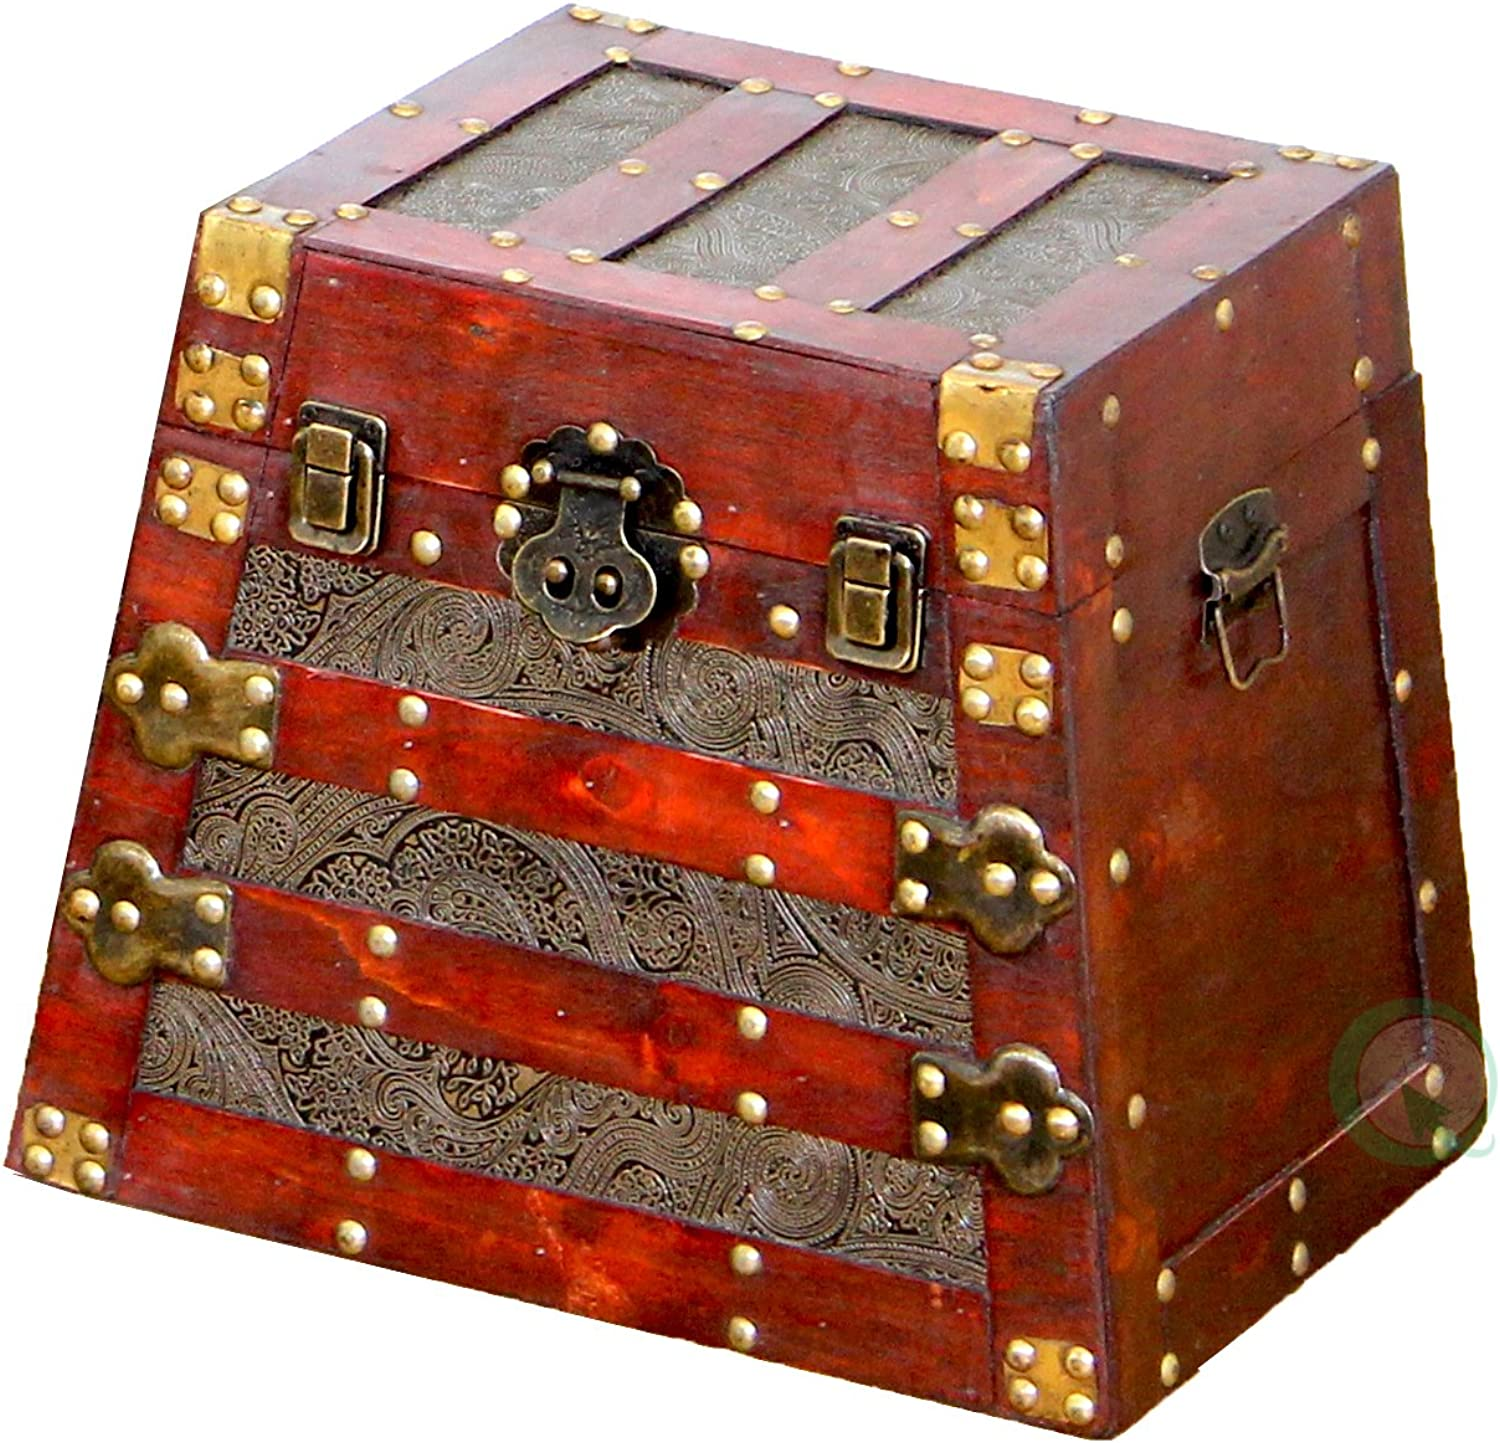 Vintiquewise Antique Pyramid Wooden Trunk, Small